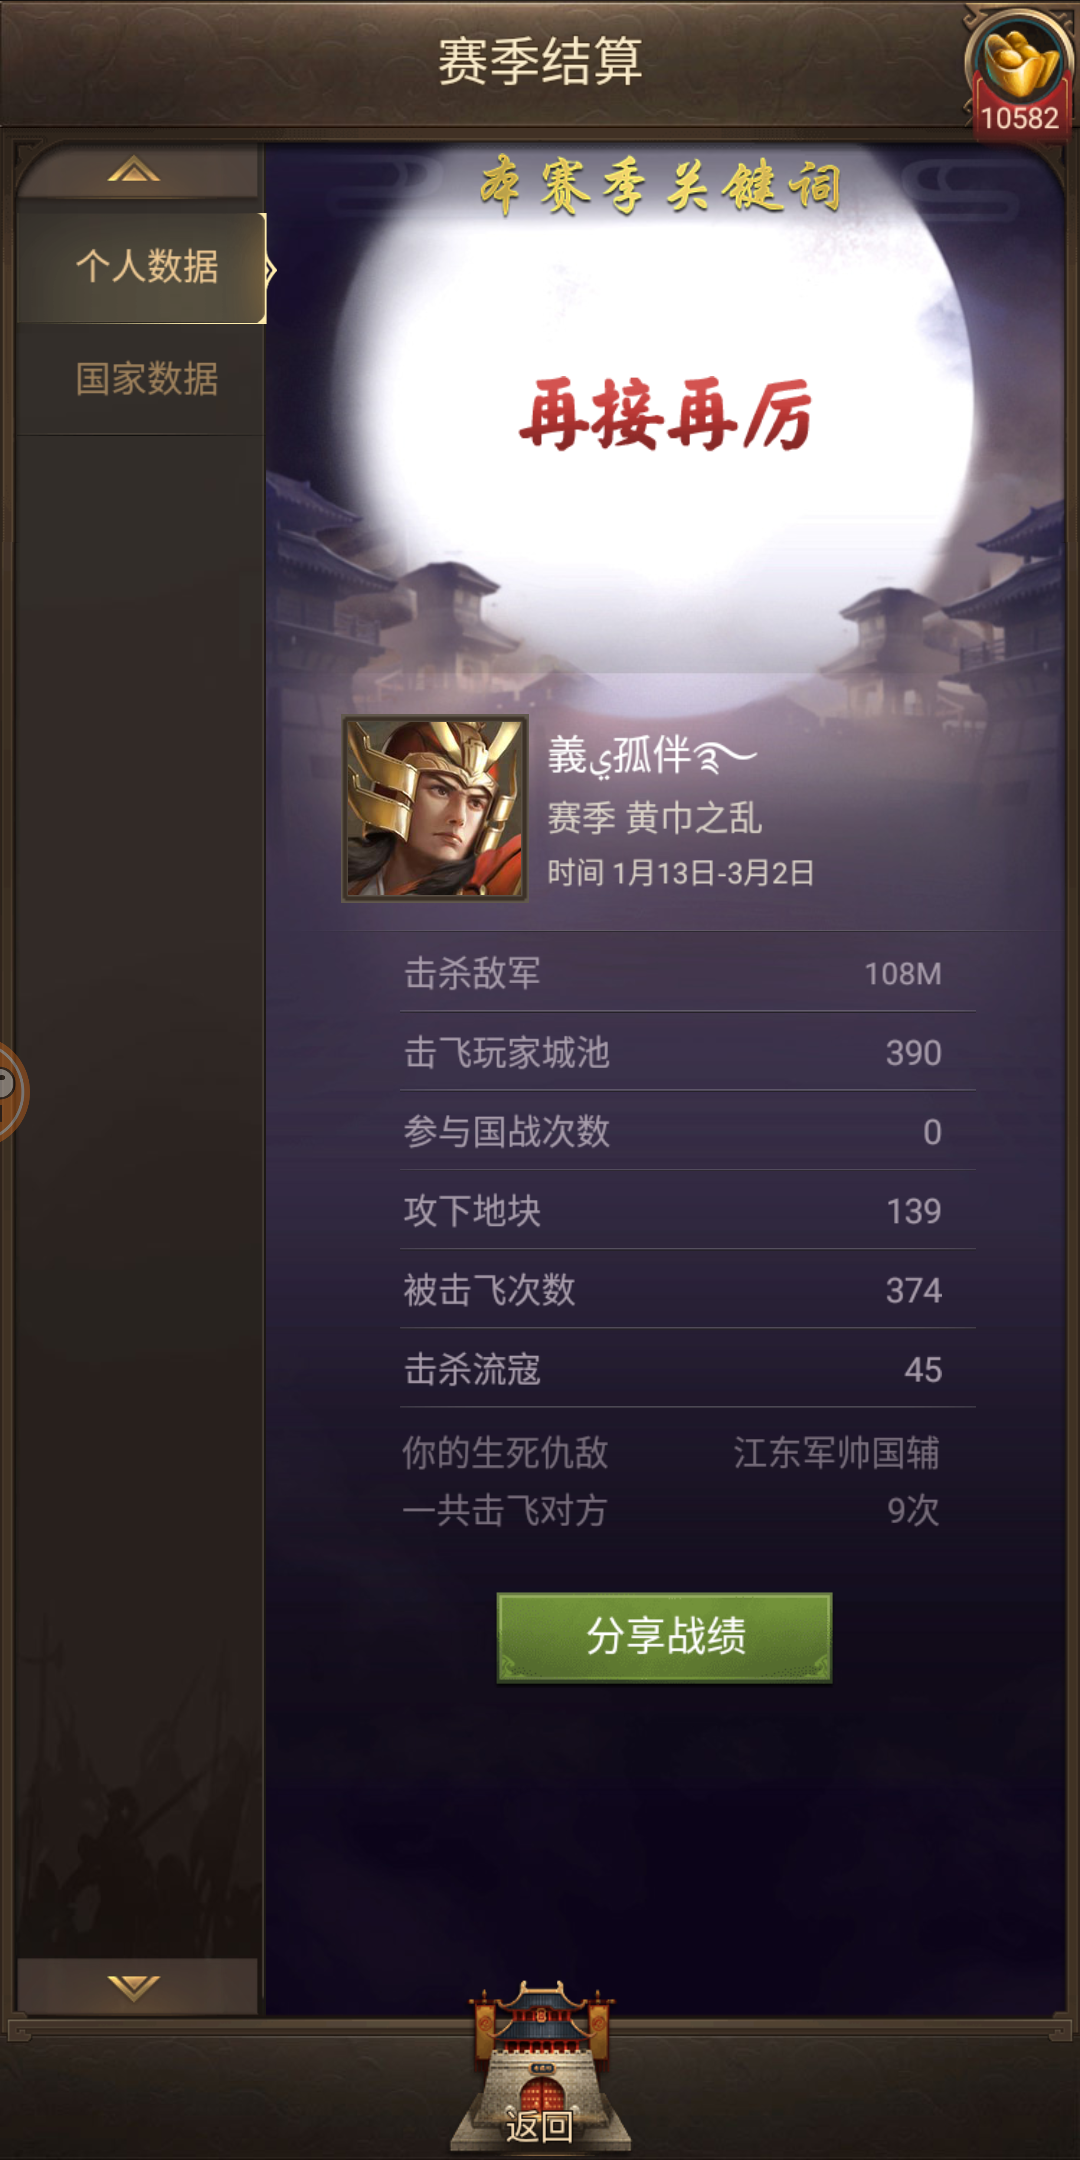 Screenshot_2020-03-02-16-07-46-506_com.juedigame.fyzh.shoumeng.png